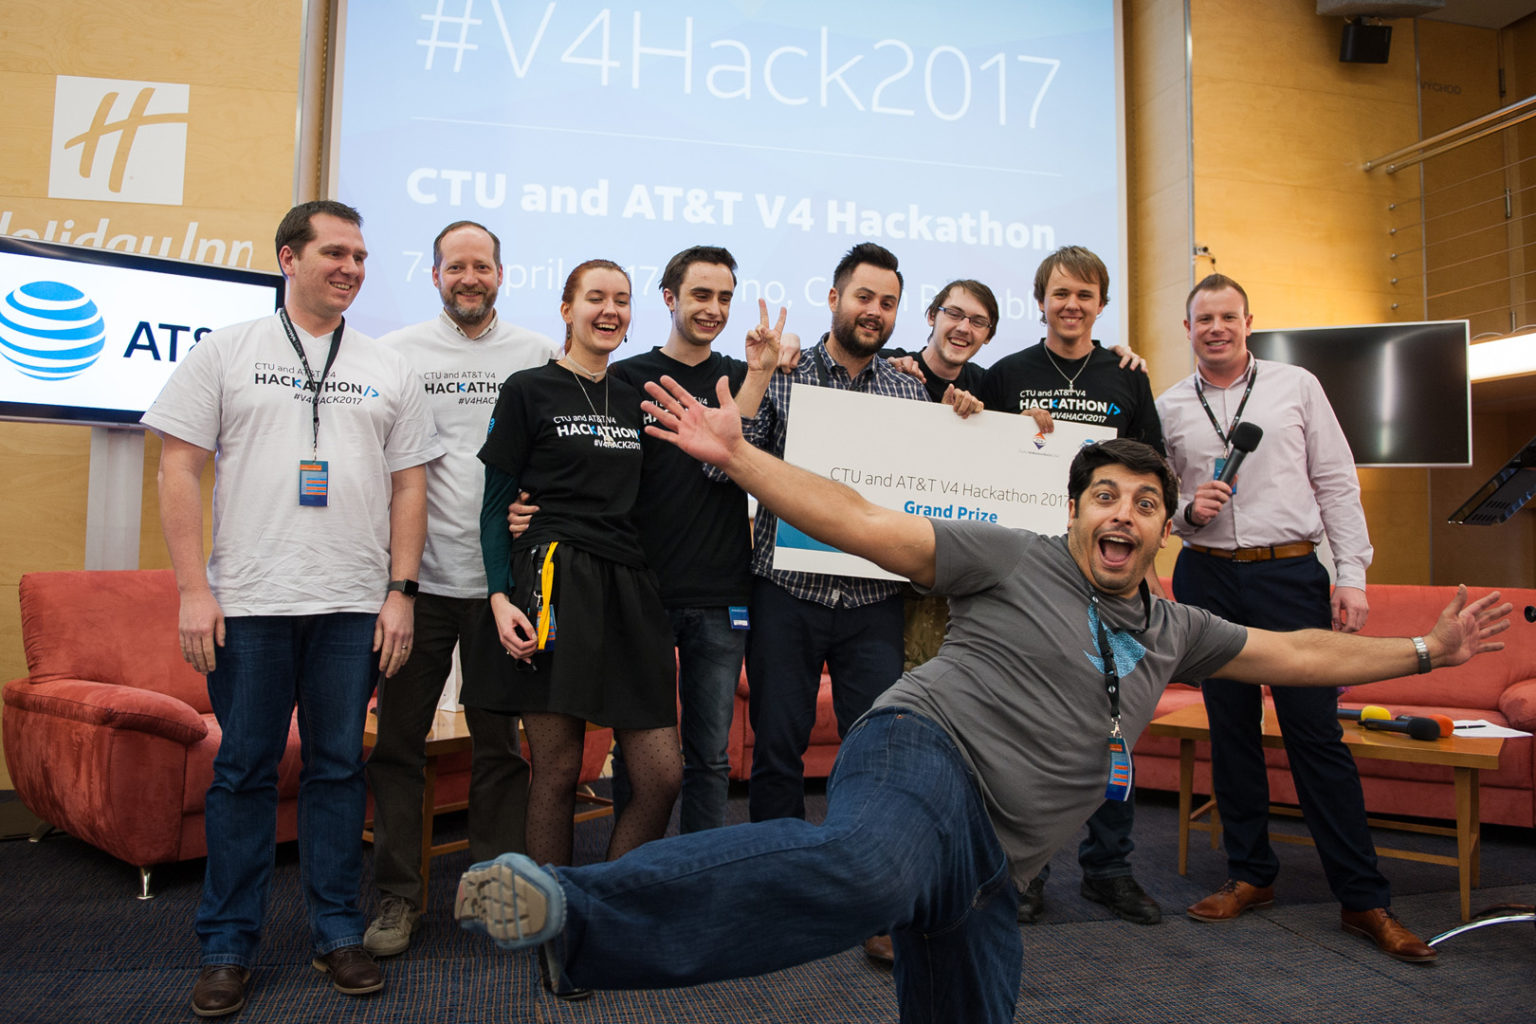 V4 Hackathon 2017 Brno Holiday Inn Winners Grand Price